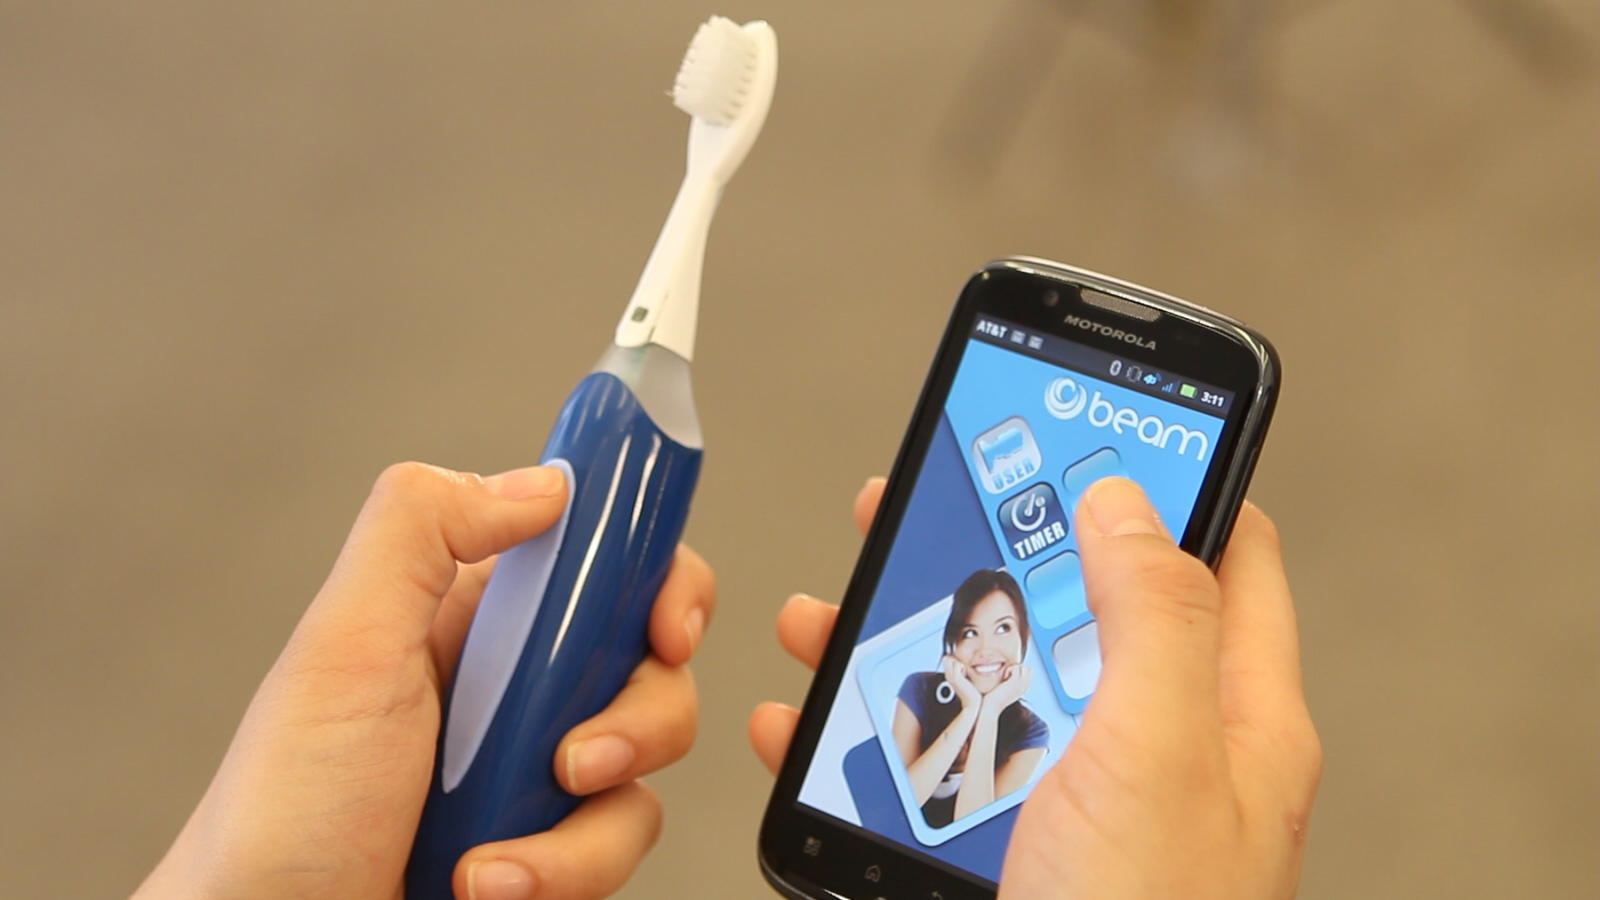 Oral-B has a connected toothbrush. You don't need it.